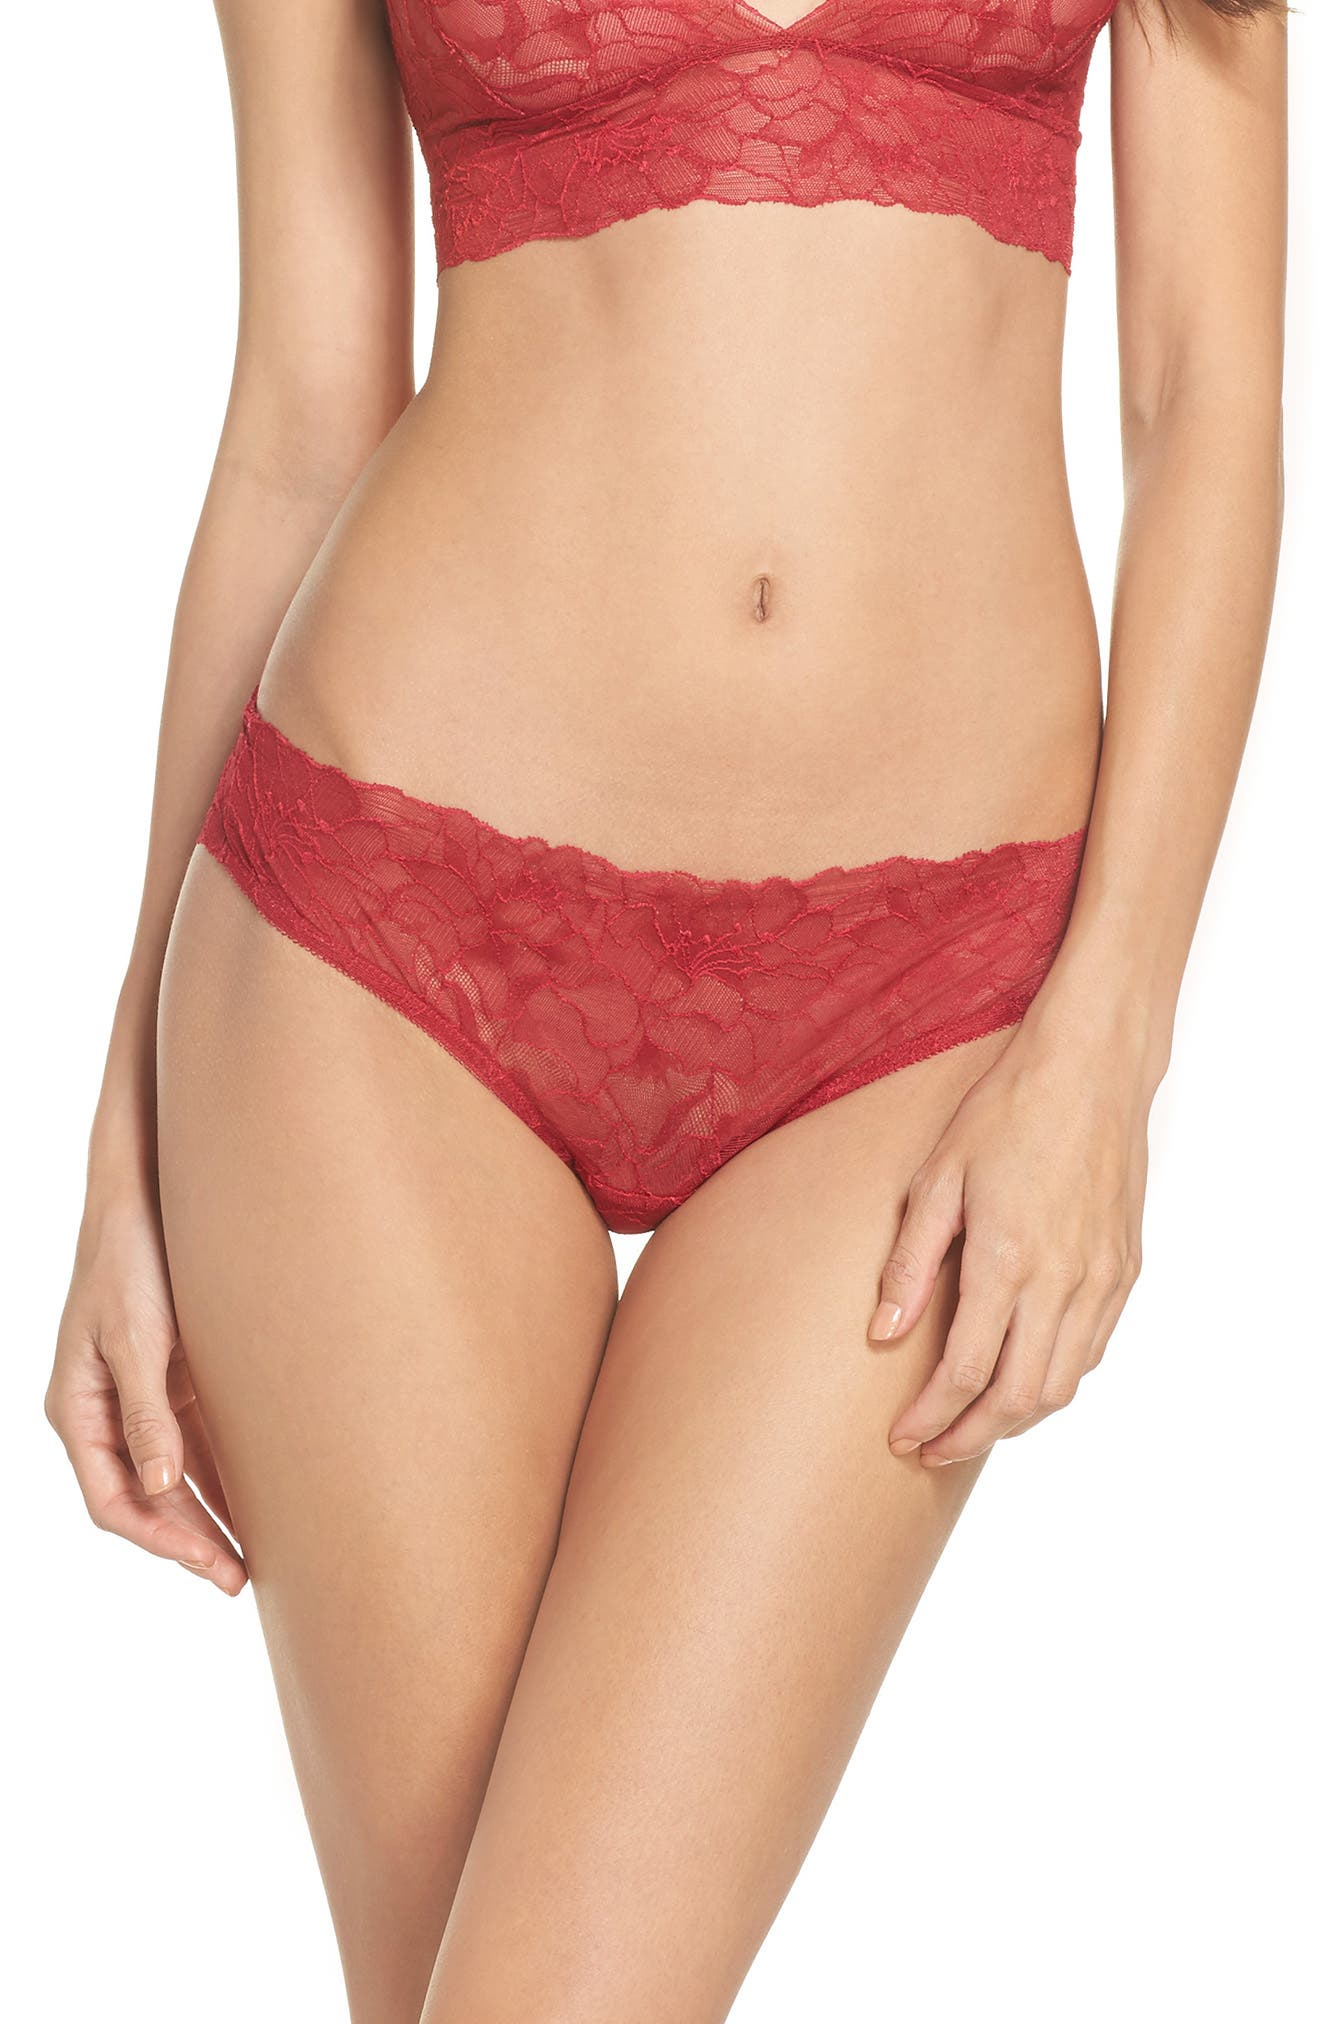 All Lace Glamour Panties,                         Main,                         color, Scarlet